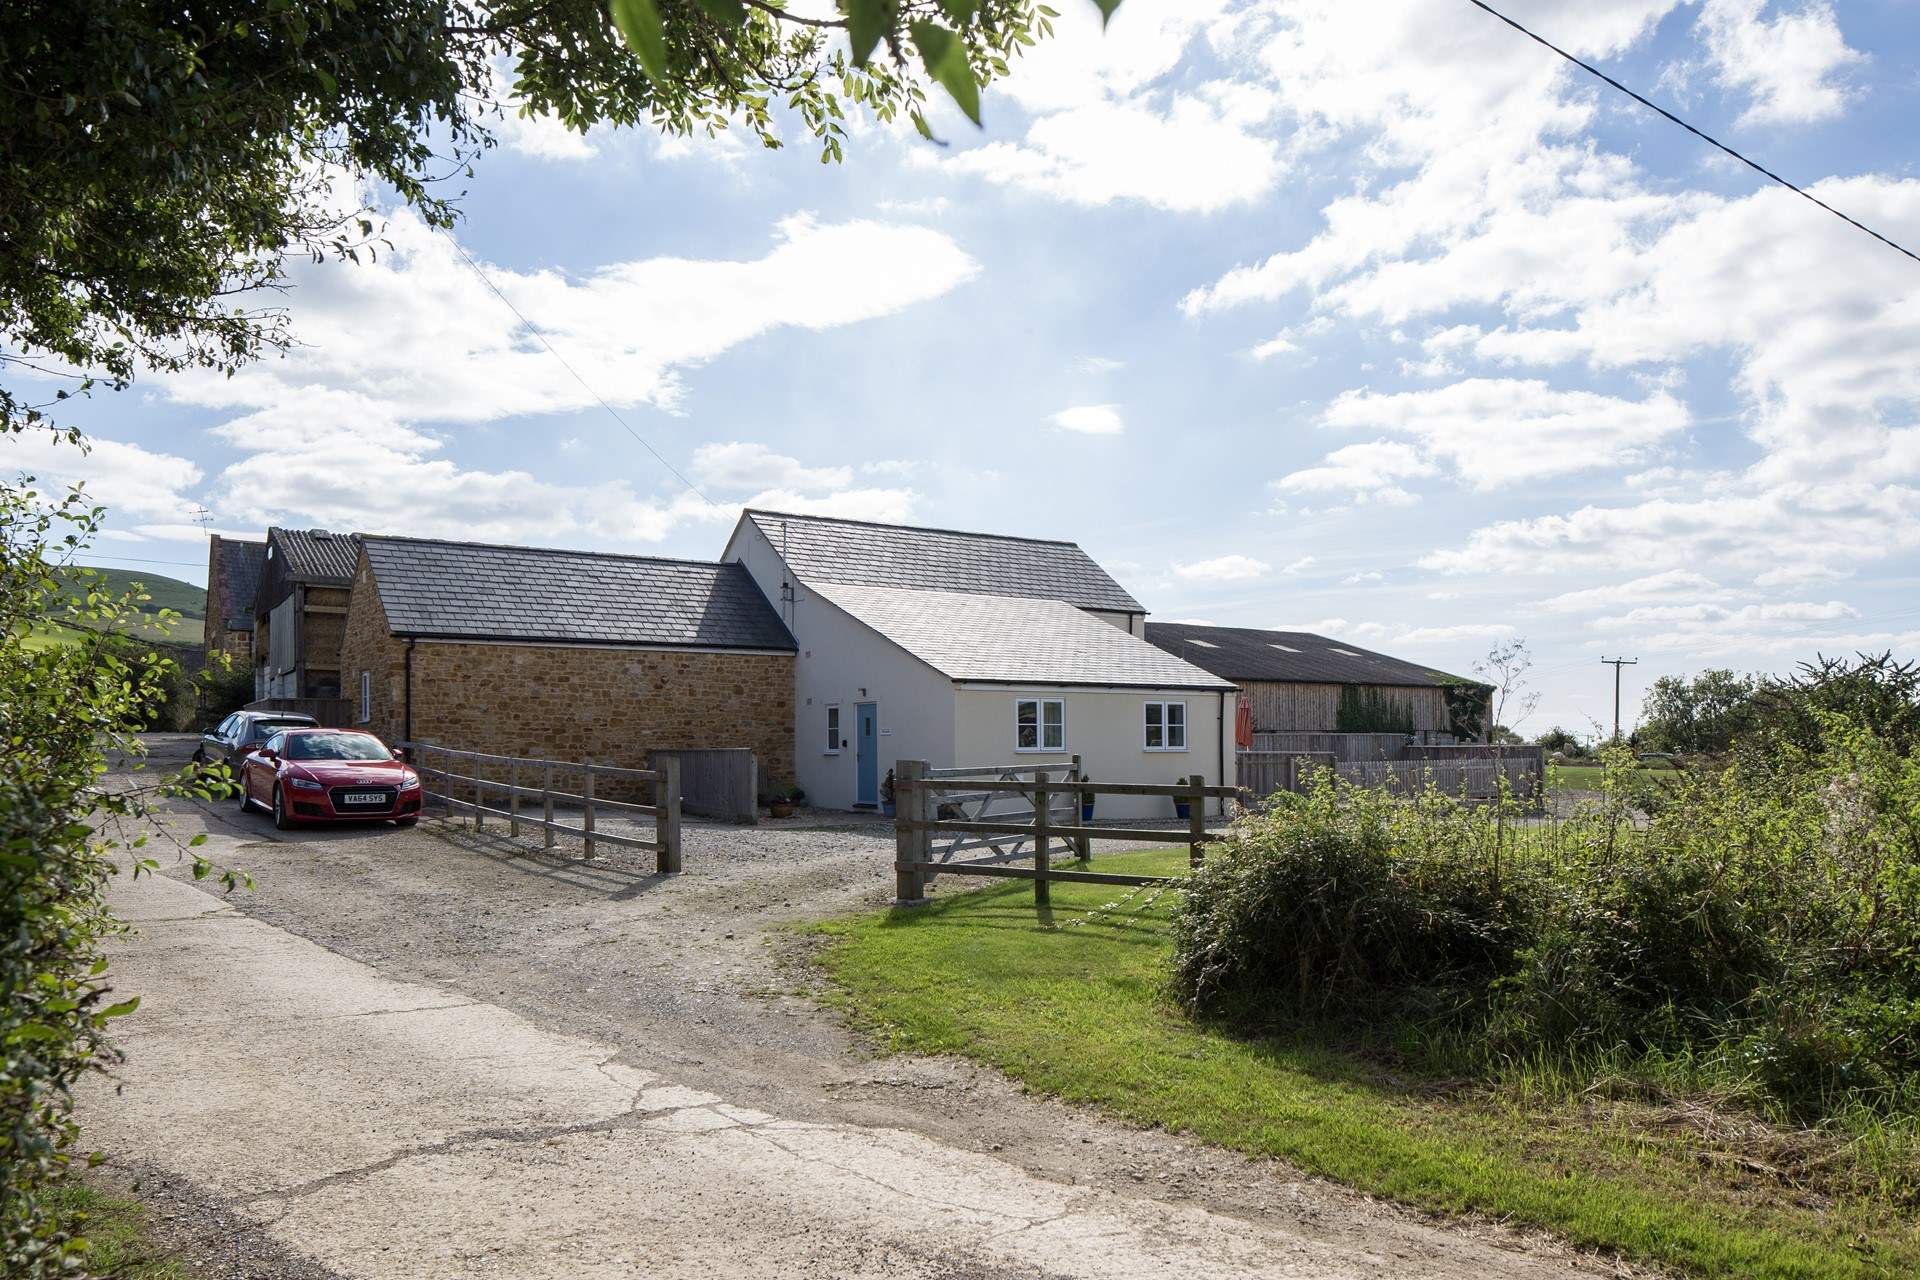 luxury dorset cottages self catering holiday cottages in dorset rh classic co uk  cottages to let in dorset 2018